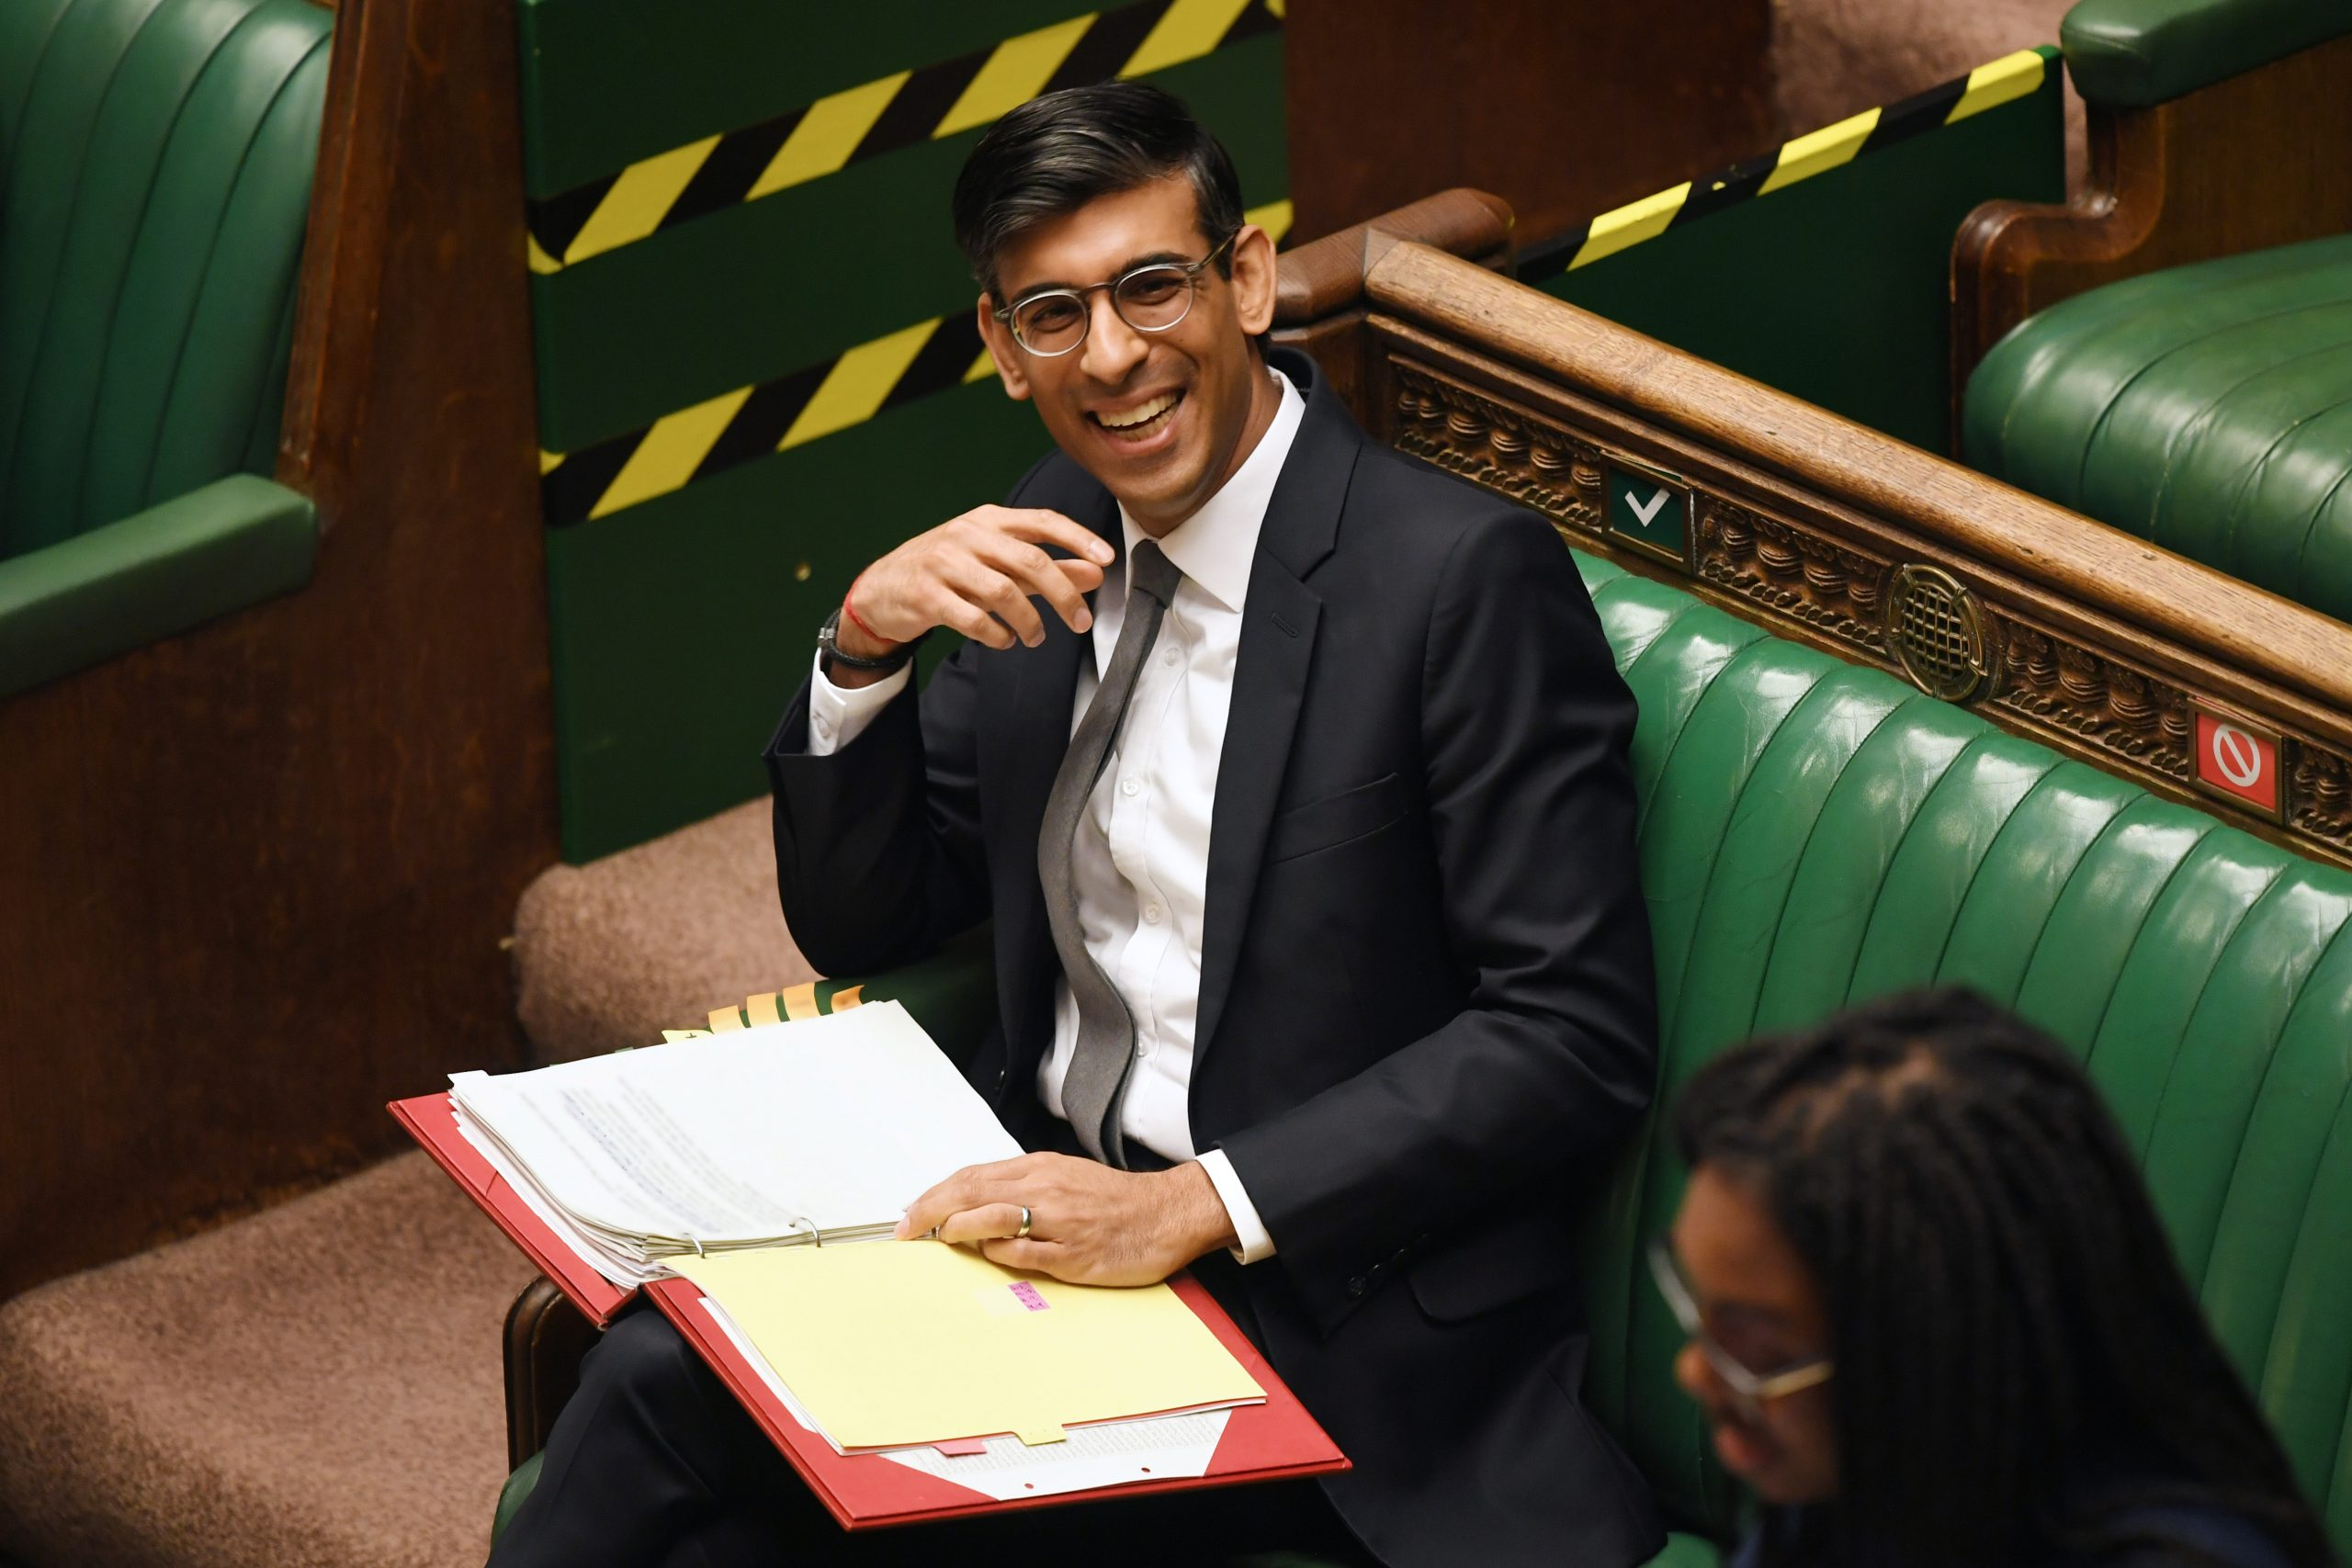 Rishi Sunak reacts during question period to the Chancellor of the Exchequer in London, Britain July 7, 2020. (UK Parliament/Jessica Taylor/Handout via REUTERS)